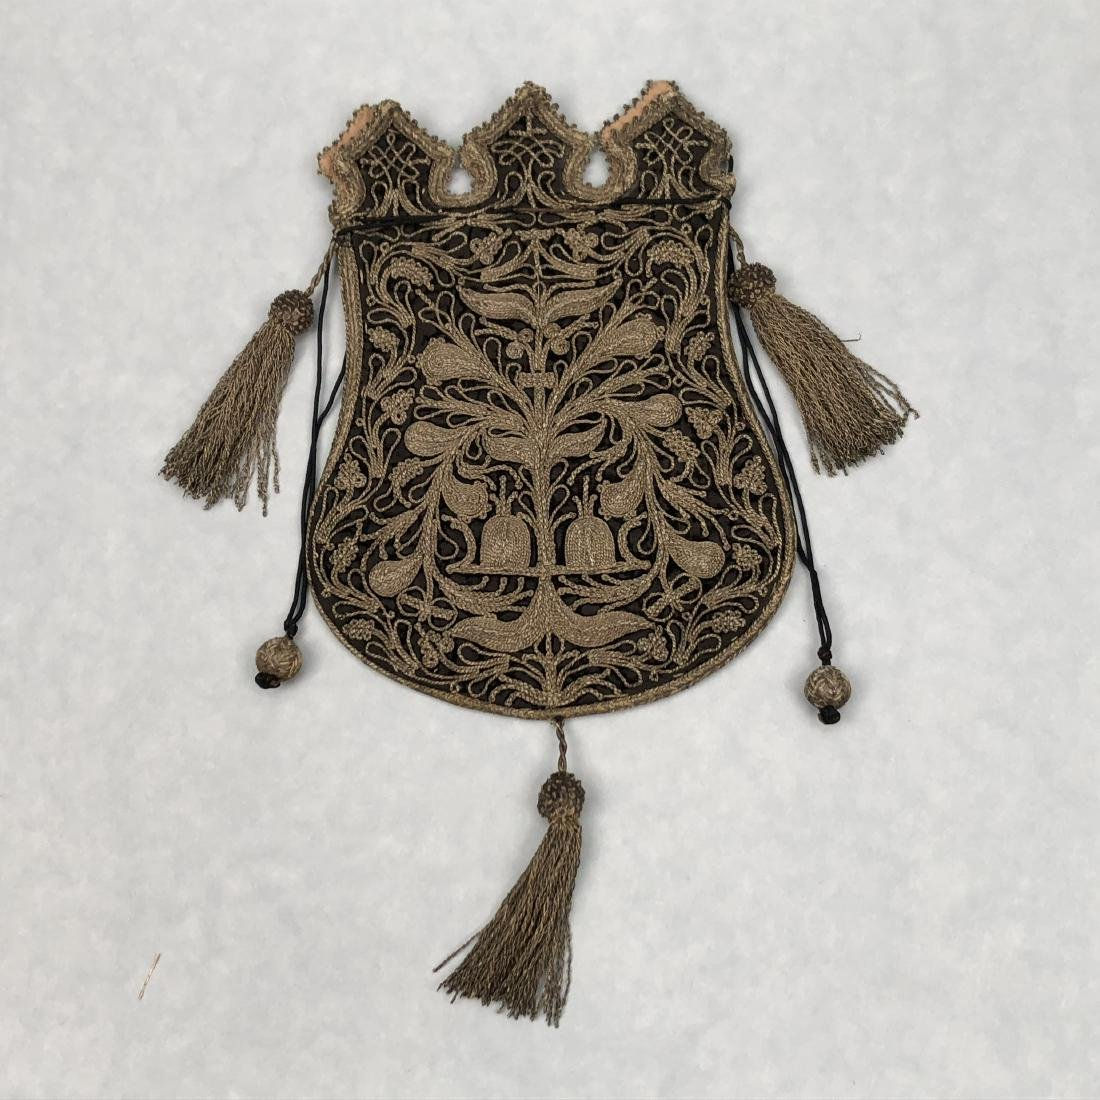 METALLIC EMBROIDERED BAG with TASSELS, 1870s